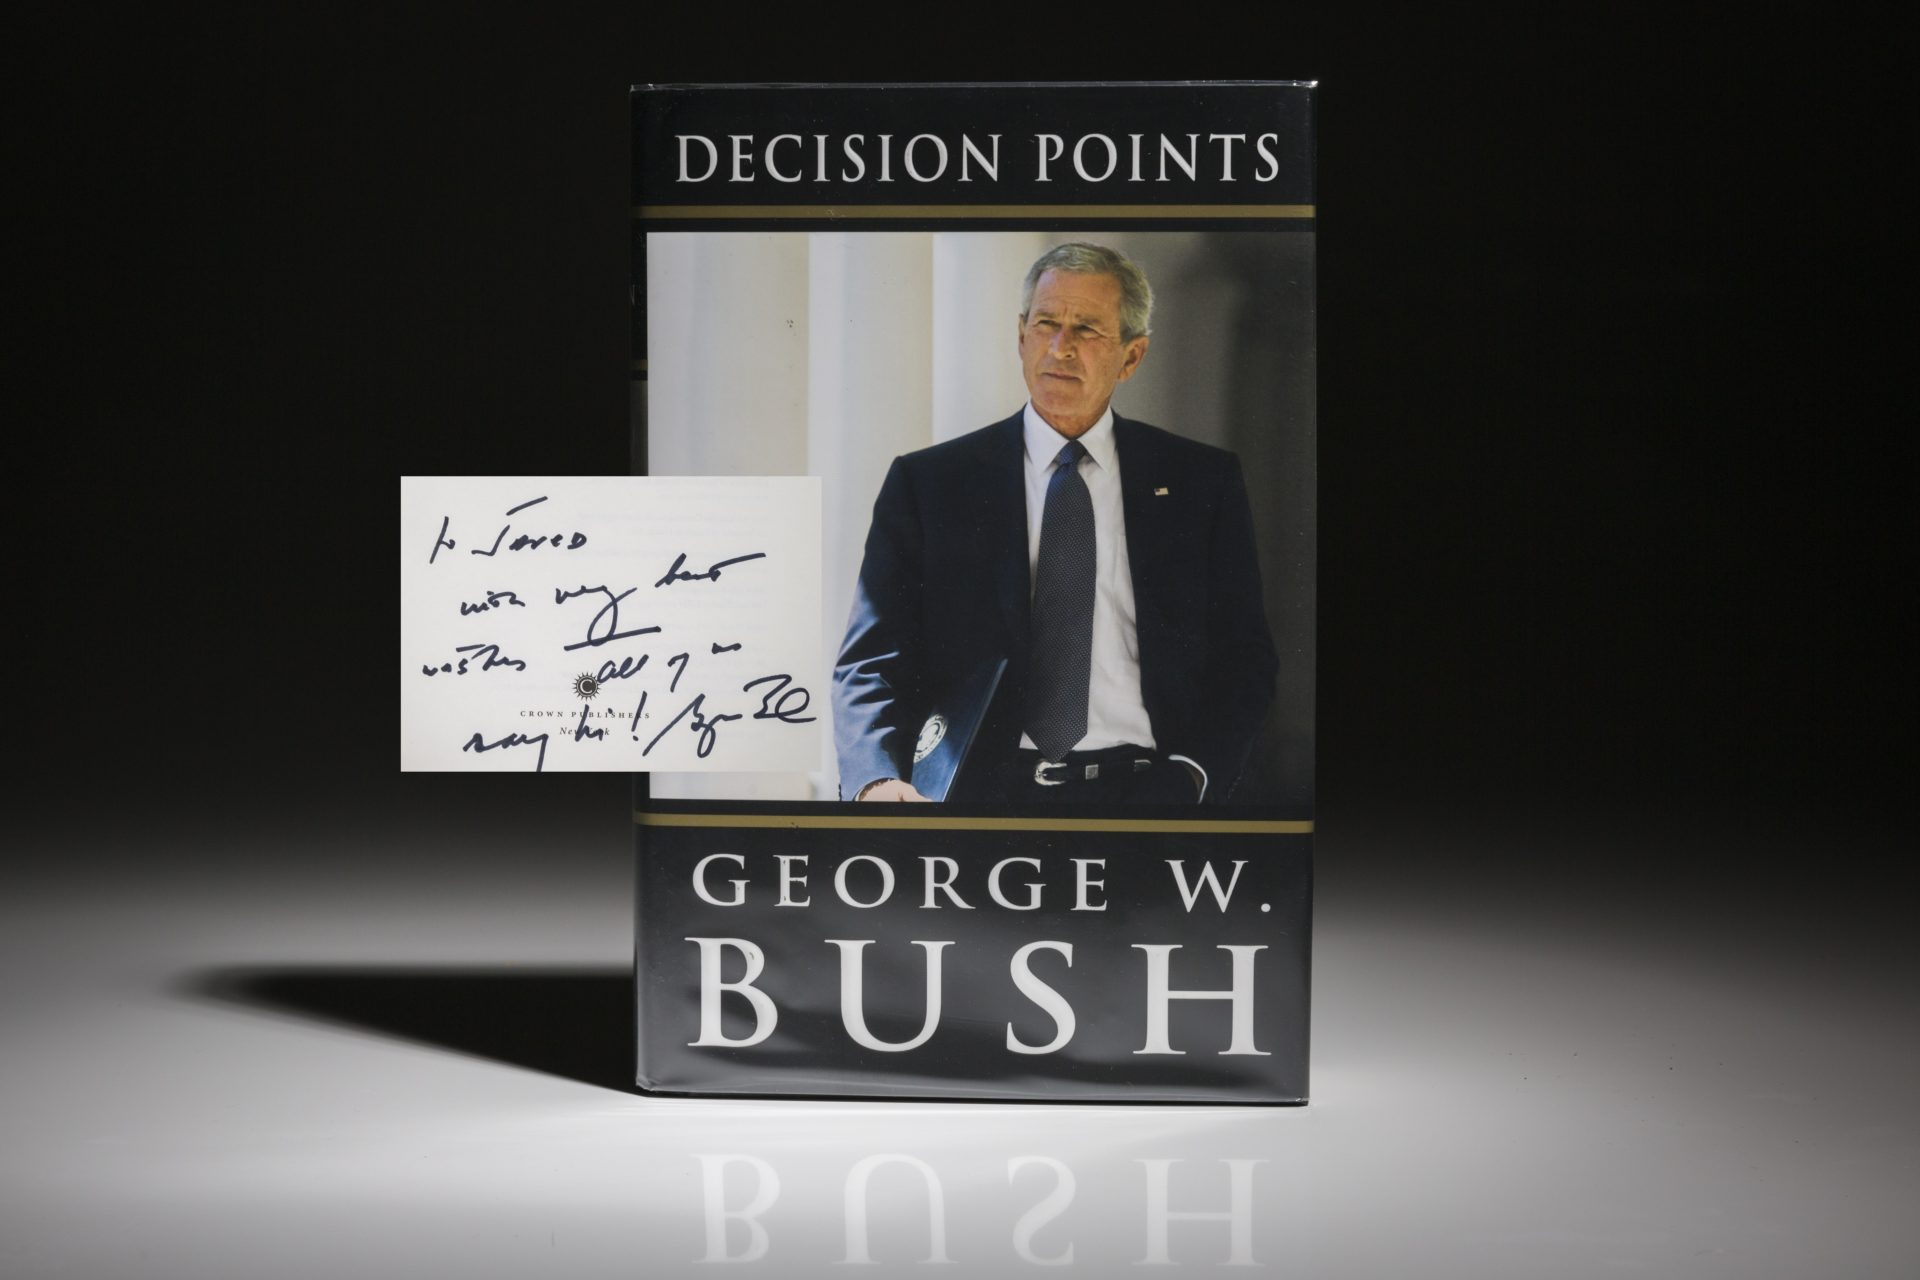 Decision Points by President George W. Bush, signed first edition, first printing.